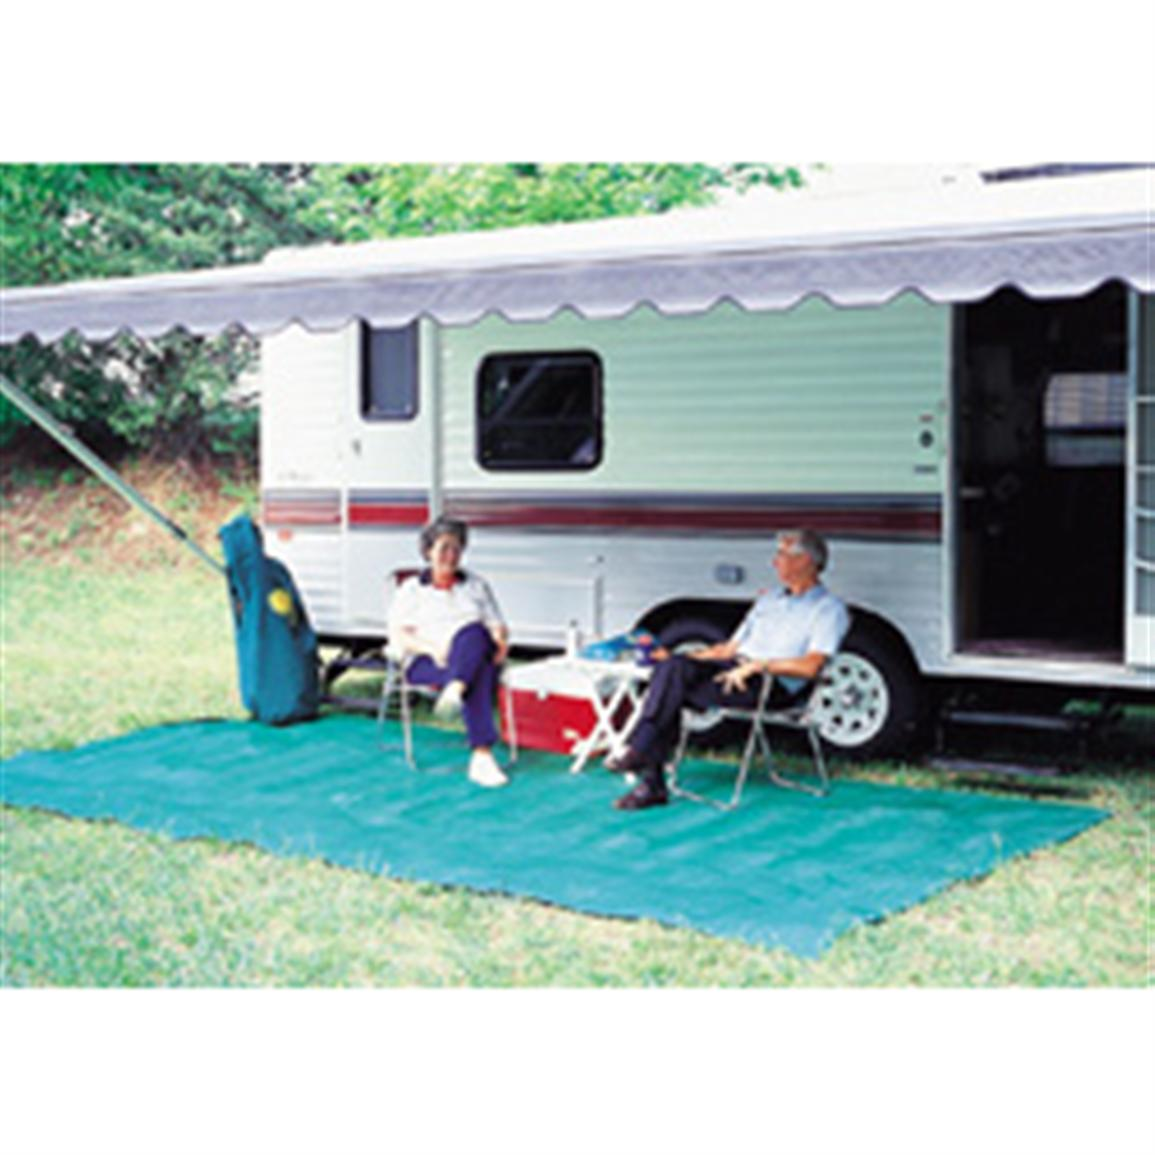 Camco Reversible Awning Leisure Mat, 7x15'